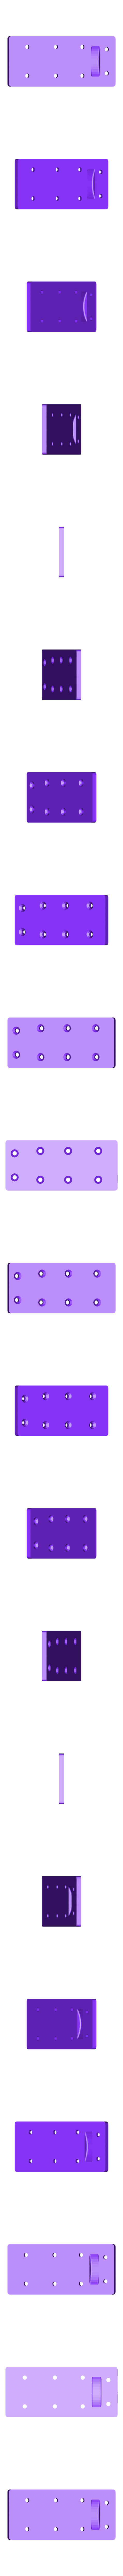 Rear mount plate.STL Download free STL file 1/10 RC 4WD TRUGGY BT250.2 • 3D printer object, ivnssnn